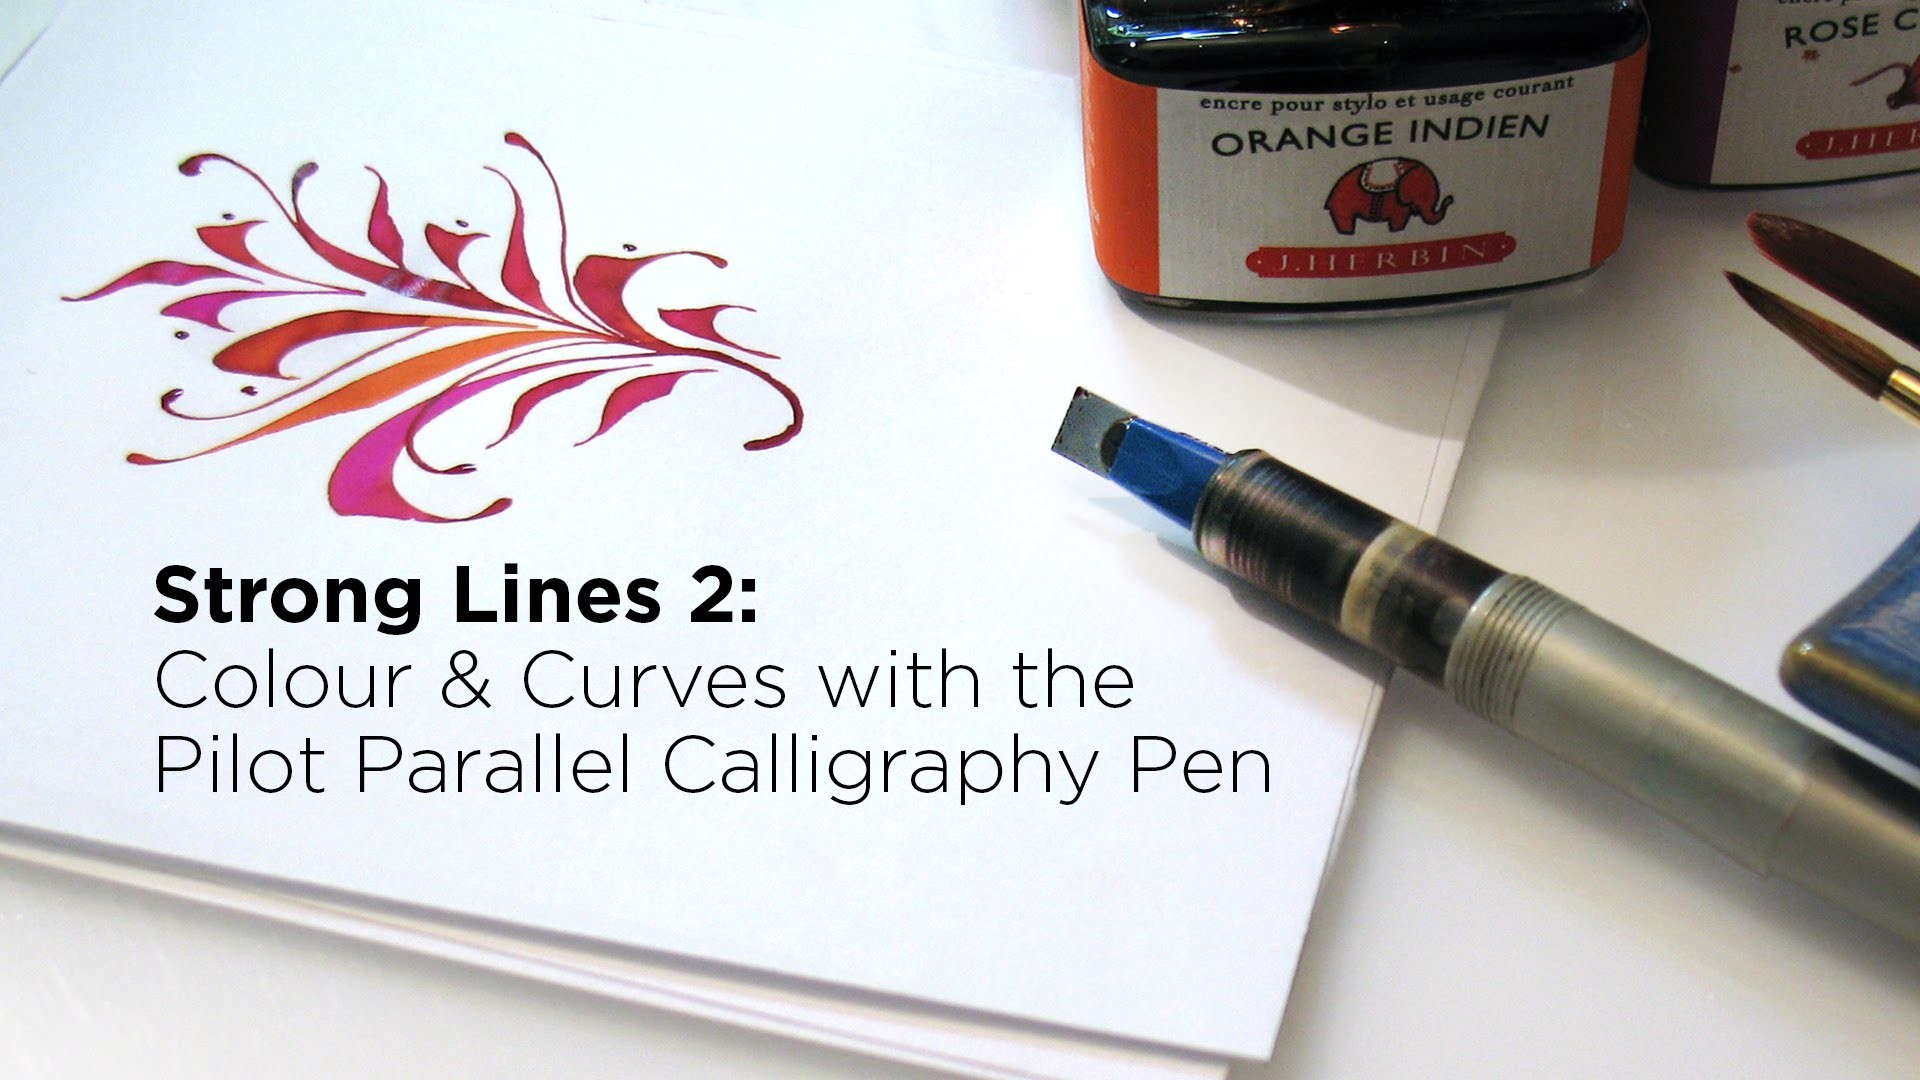 Colour Curves With The Pilot Parallel Calligraphy Pen